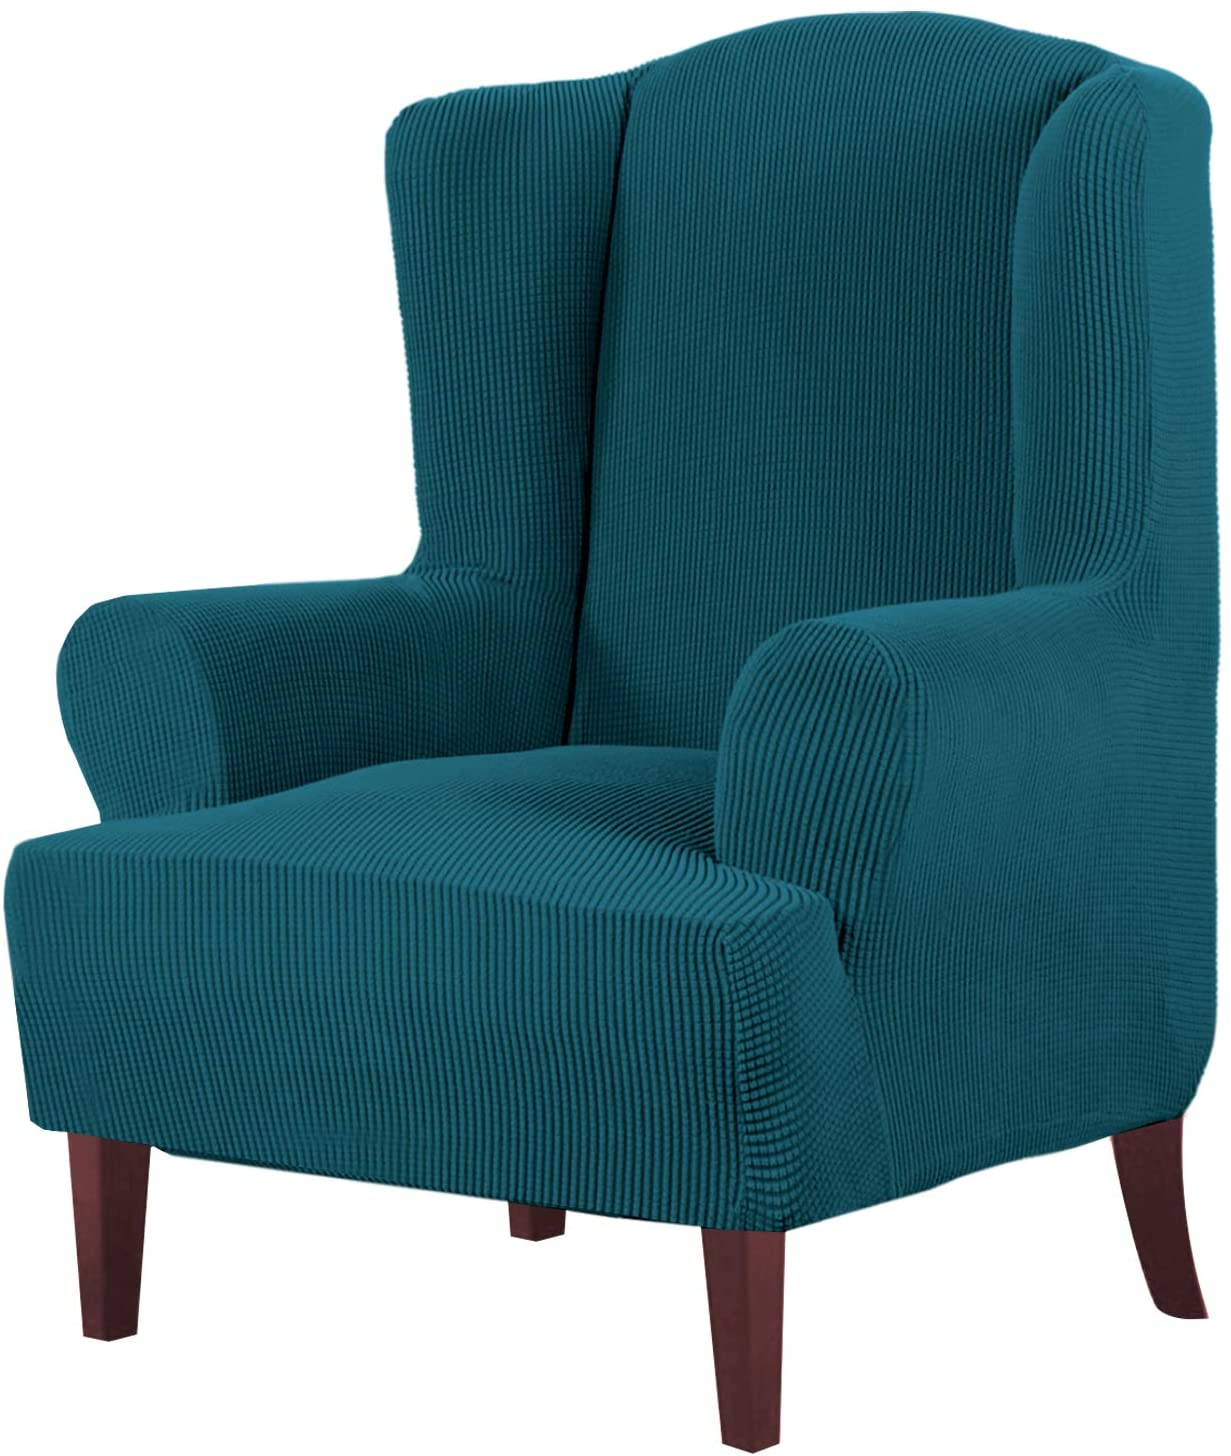 High Stretch Wing Chair Covers Slipcovers Wingback Chair Slipcovers Wingback Chair Covers Furniture Cover Protector, Feature Soft Thick Checked Pattern Jacquard Fabric, Deep Teal